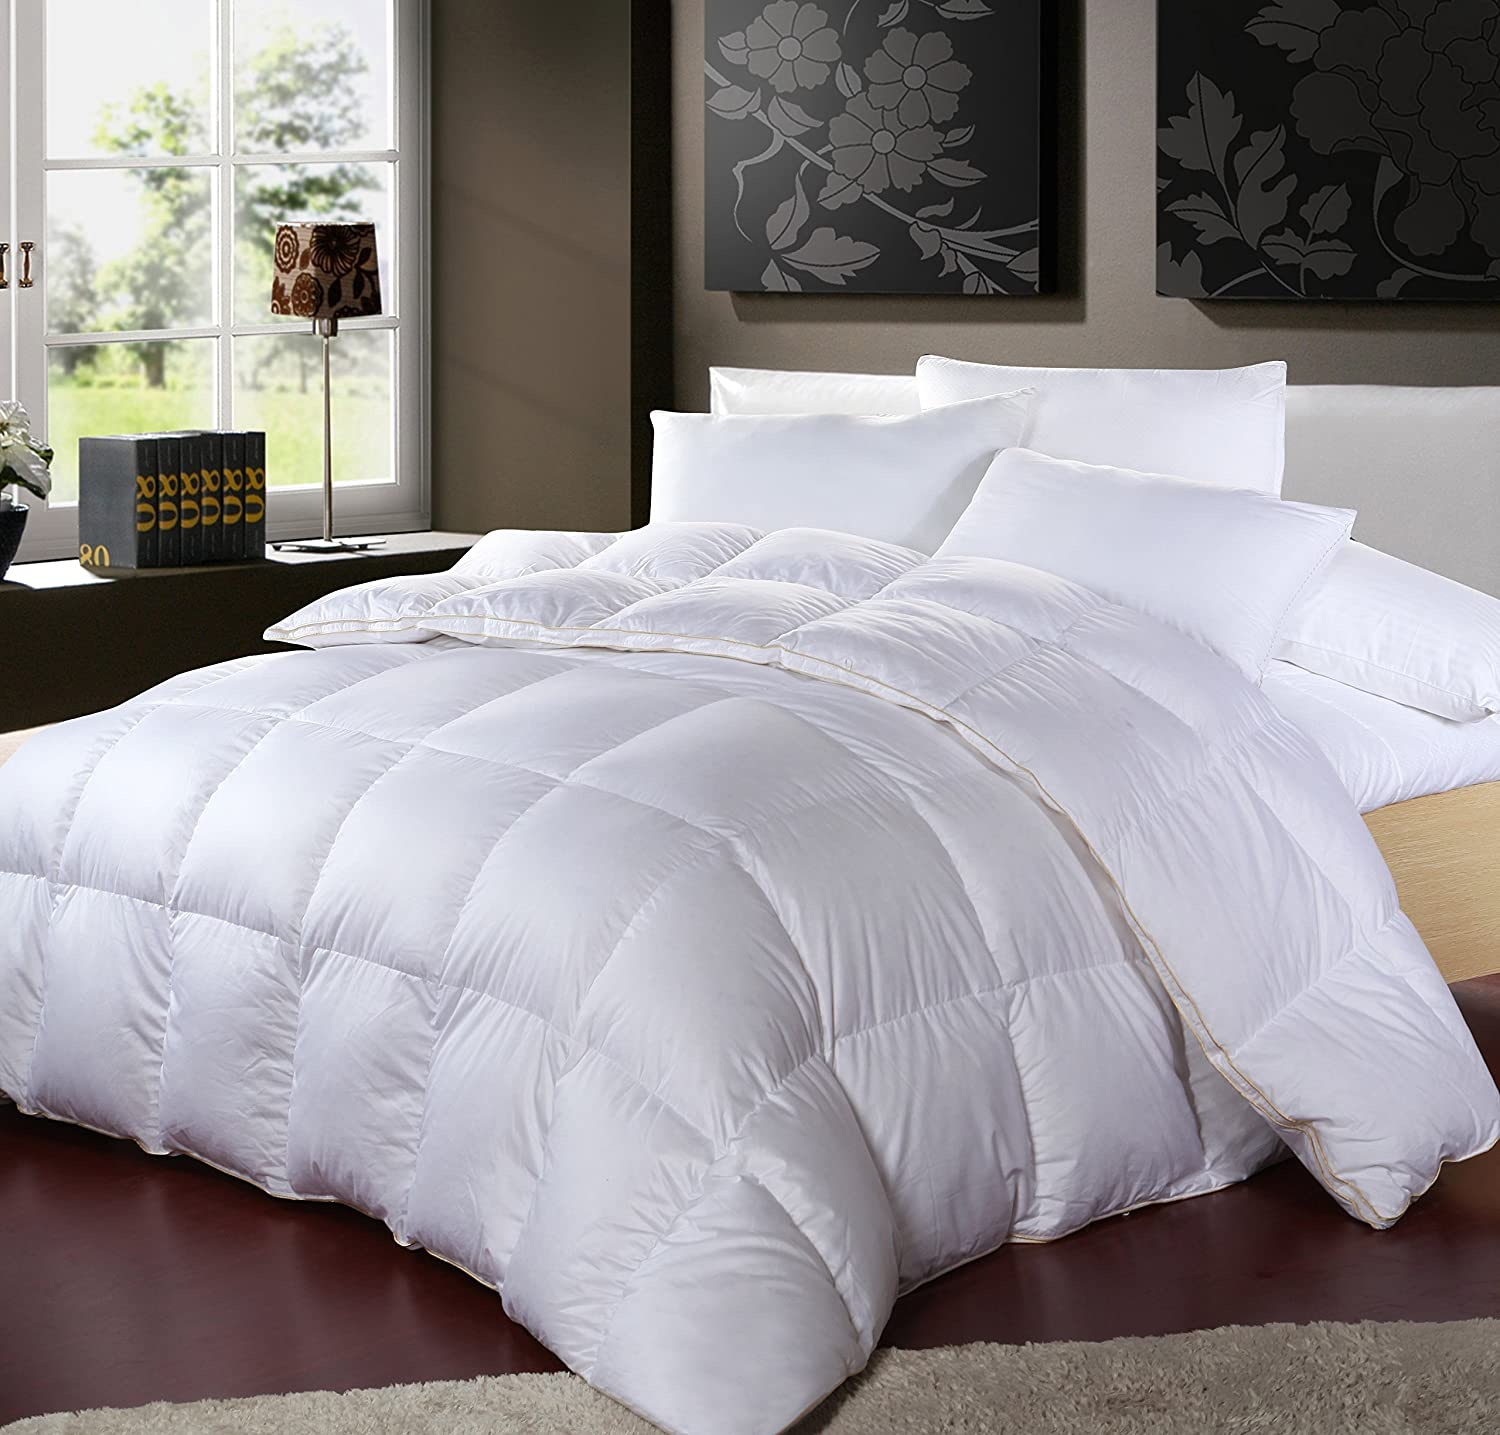 Winter Bedding Comforters Sale Ease Bedding With Style